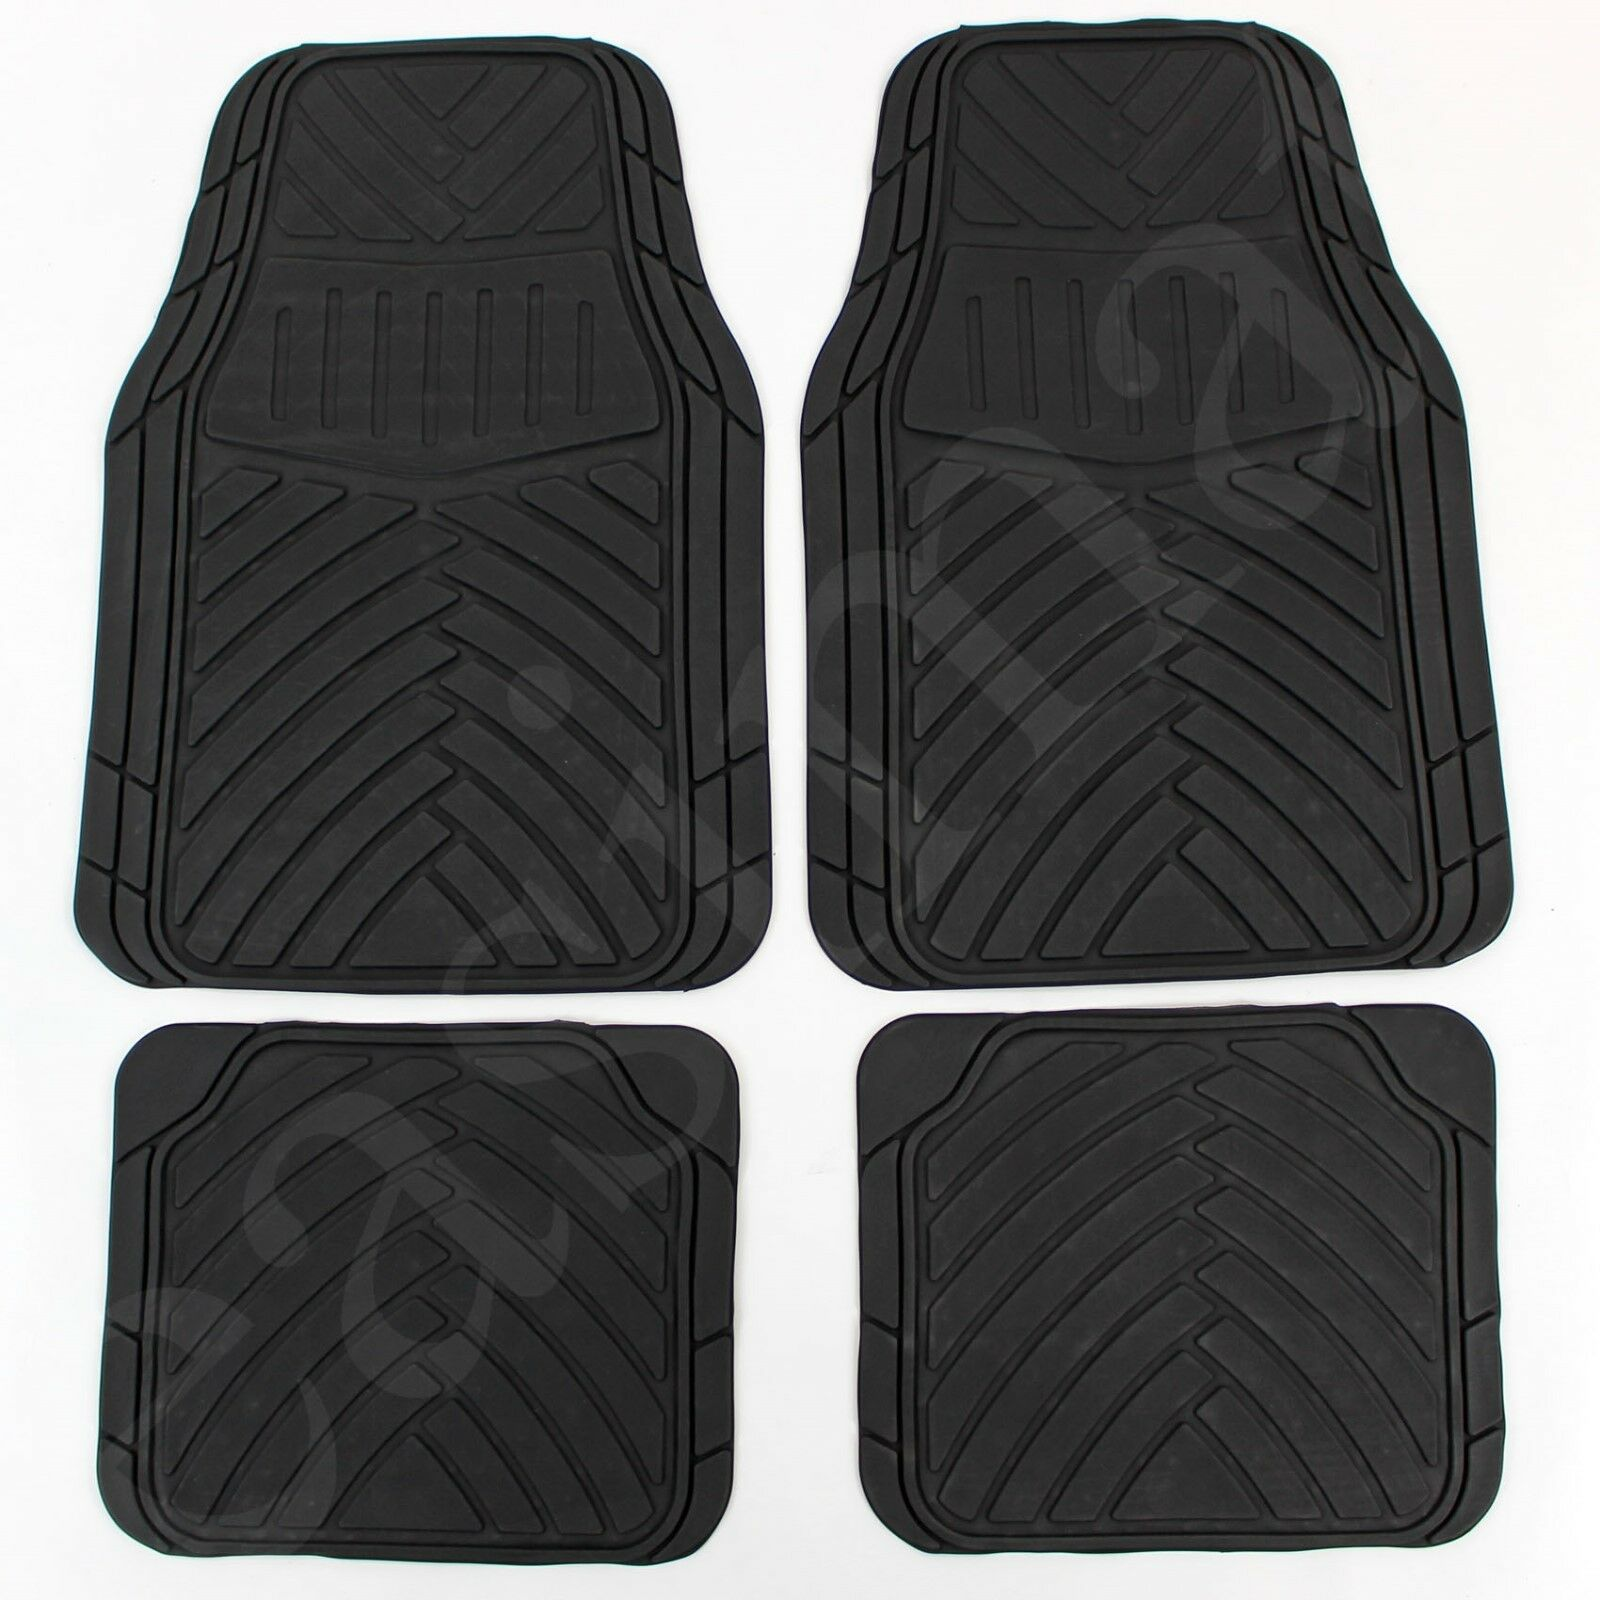 Car Parts - 4 Pcs Rubber Car Van Mats Black Universal Fit Heavy Duty Non Slip Easimat